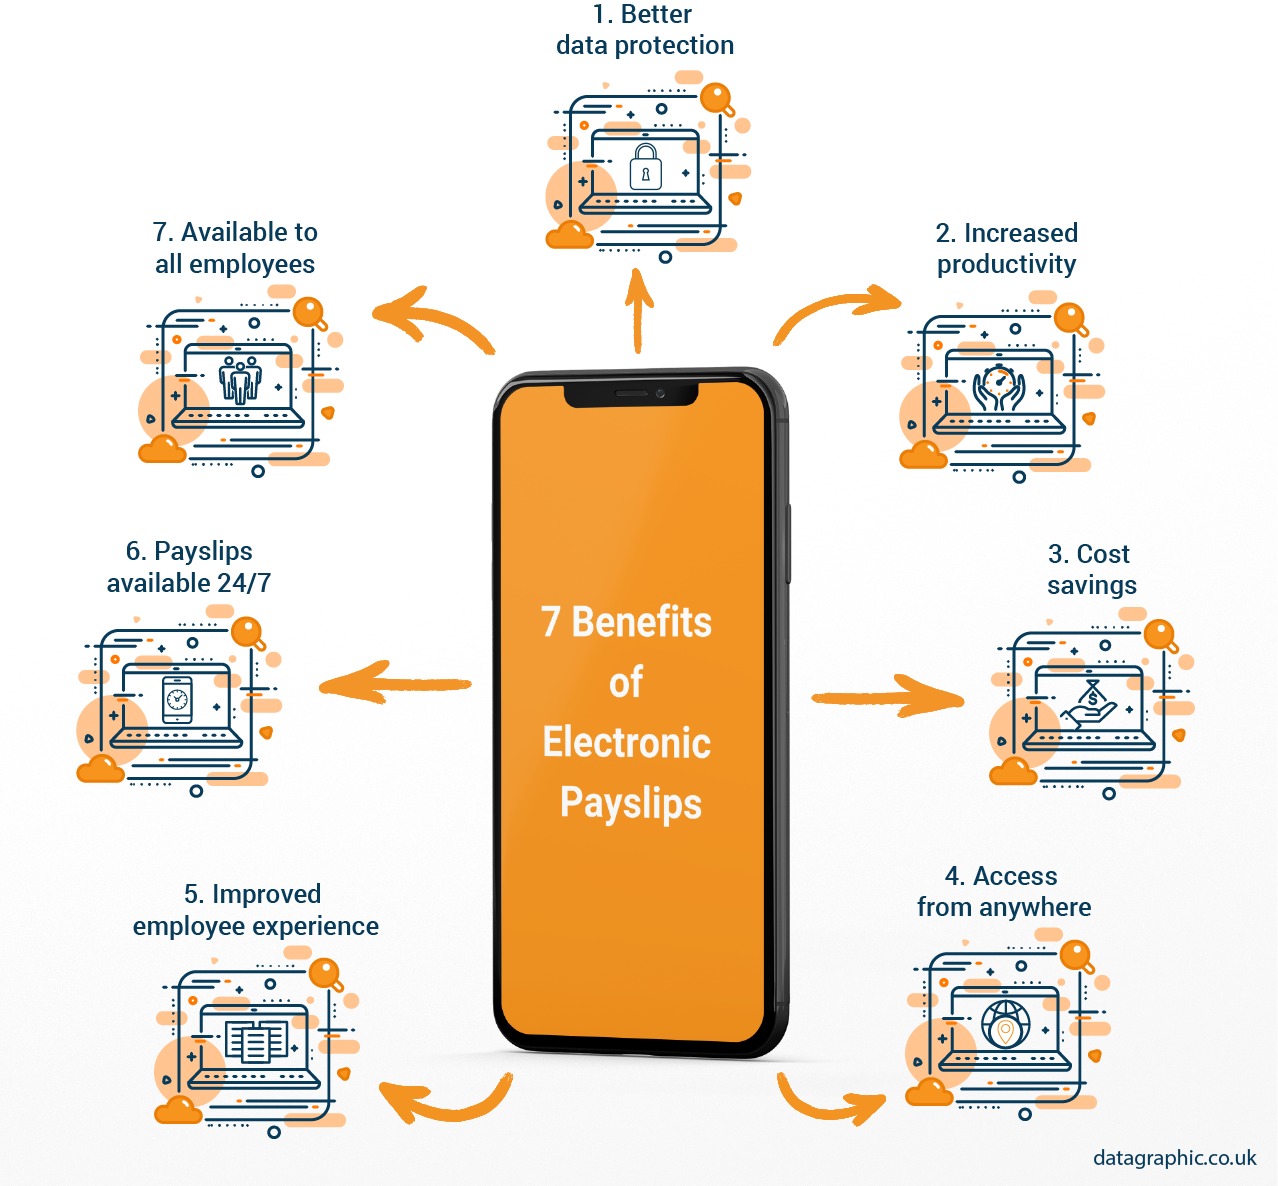 7 Benefits of Electronic Payslips Infographic 2021